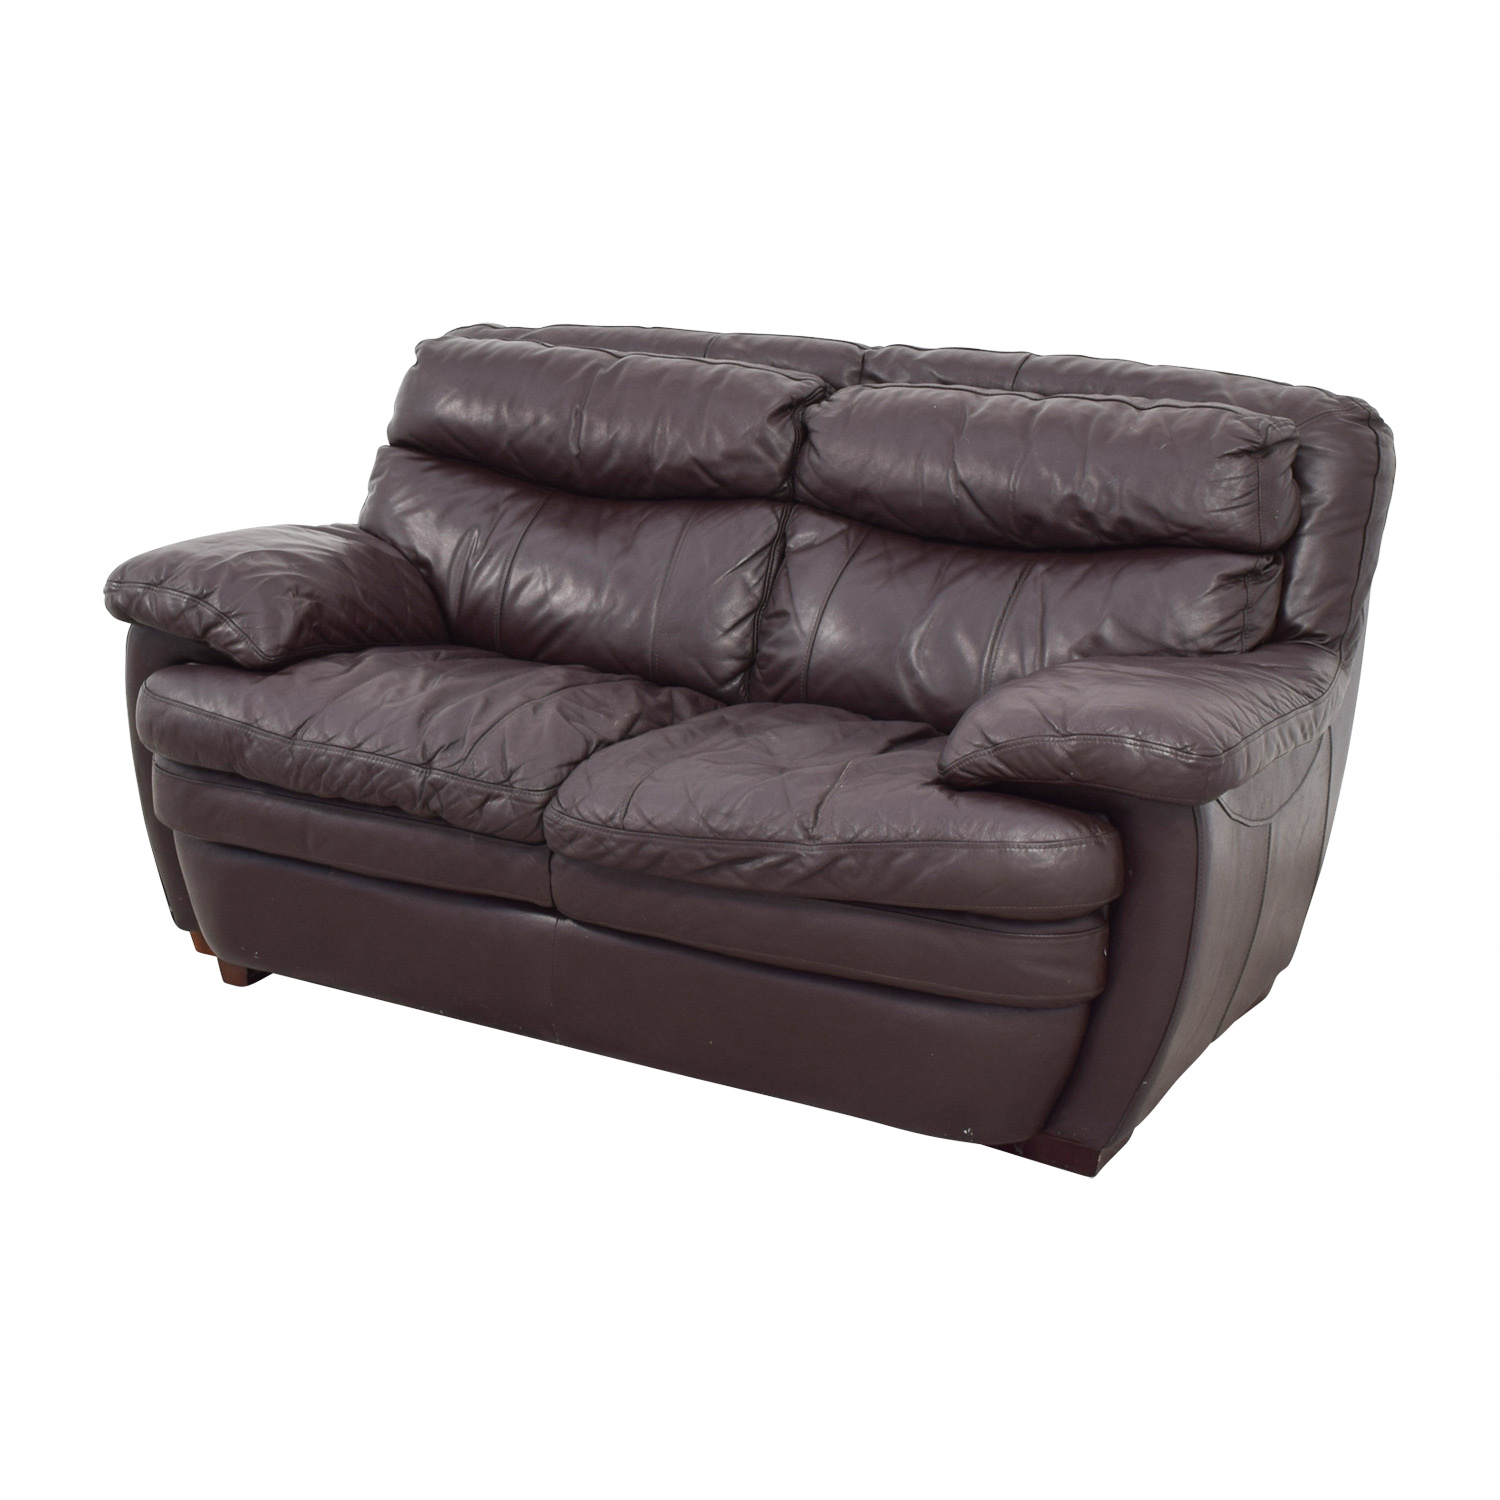 Brown leather loveseat ... bobs furniture bobs furniture brown leather loveseat for sale ... BGXPILM